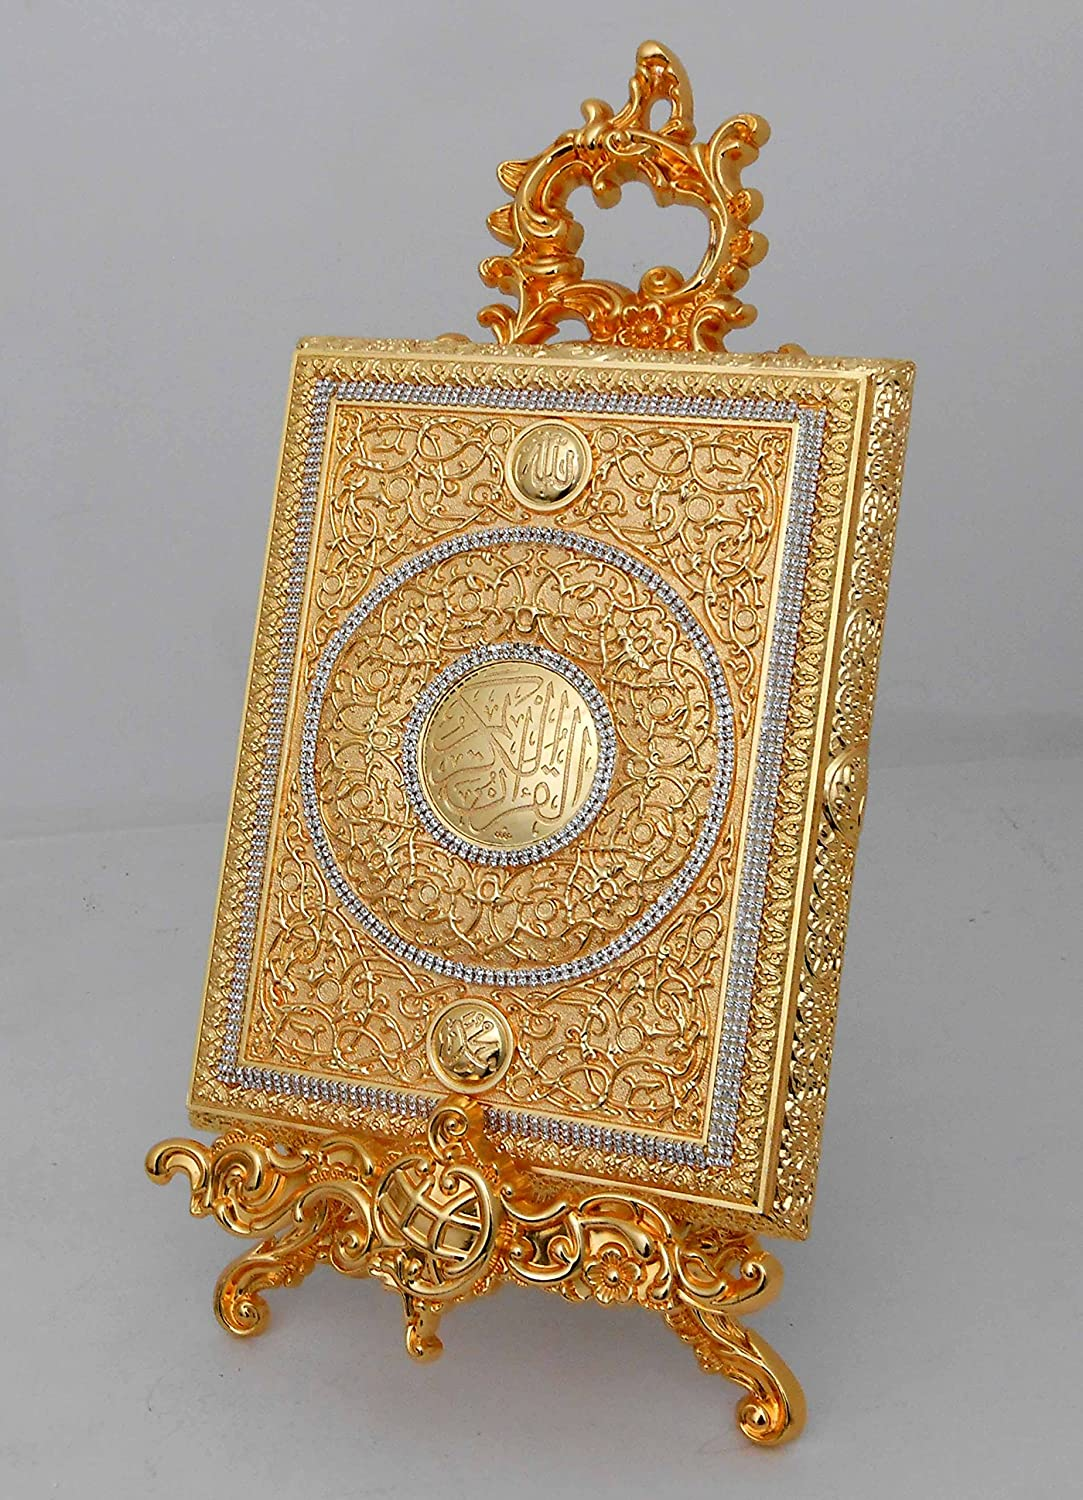 FN Islamic Muslim Gold Metal Quran Box with Stand/Home Decorative # 1664